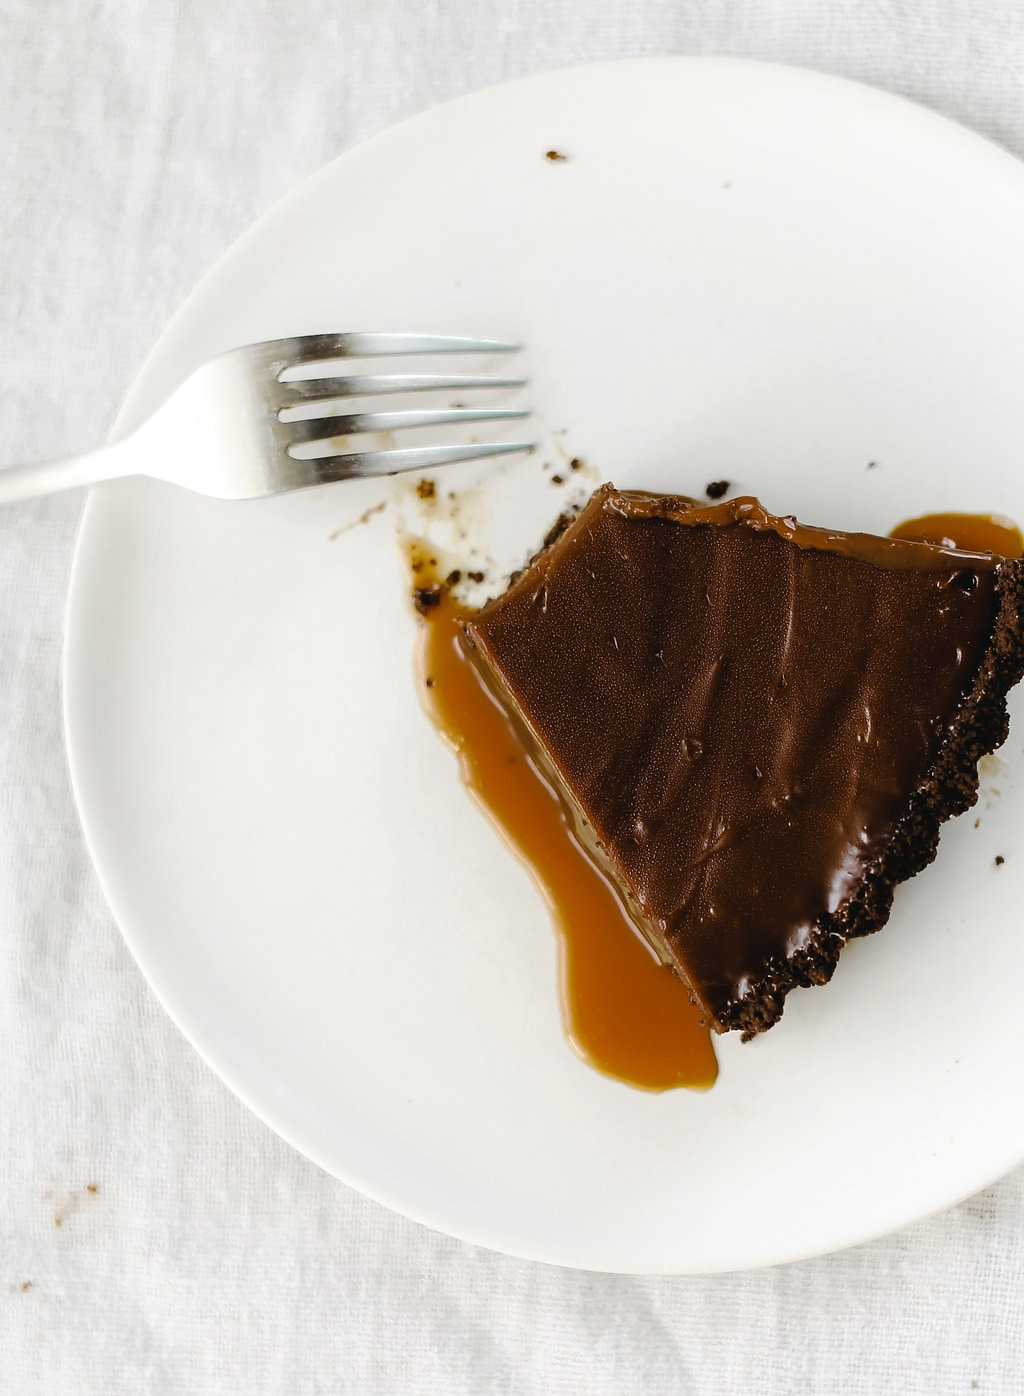 Nutella Caramel Tart features a chocolate graham cracker crust, a layer of hidden homemade salted caramel, and a rich Nutella fudge filling. Pure bliss!